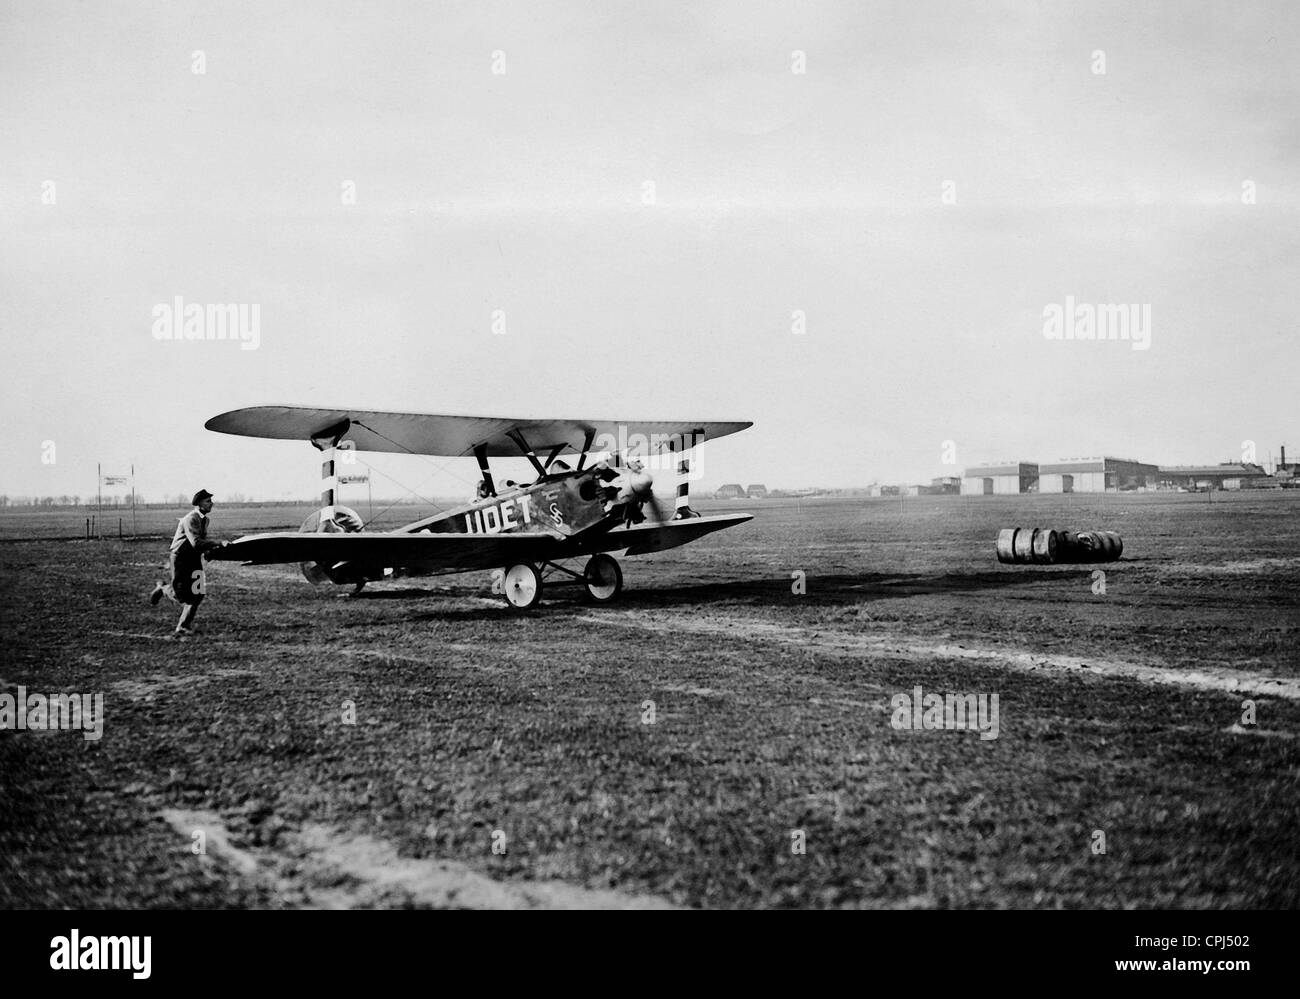 Ernst Udet at take off, 1928 - Stock Image